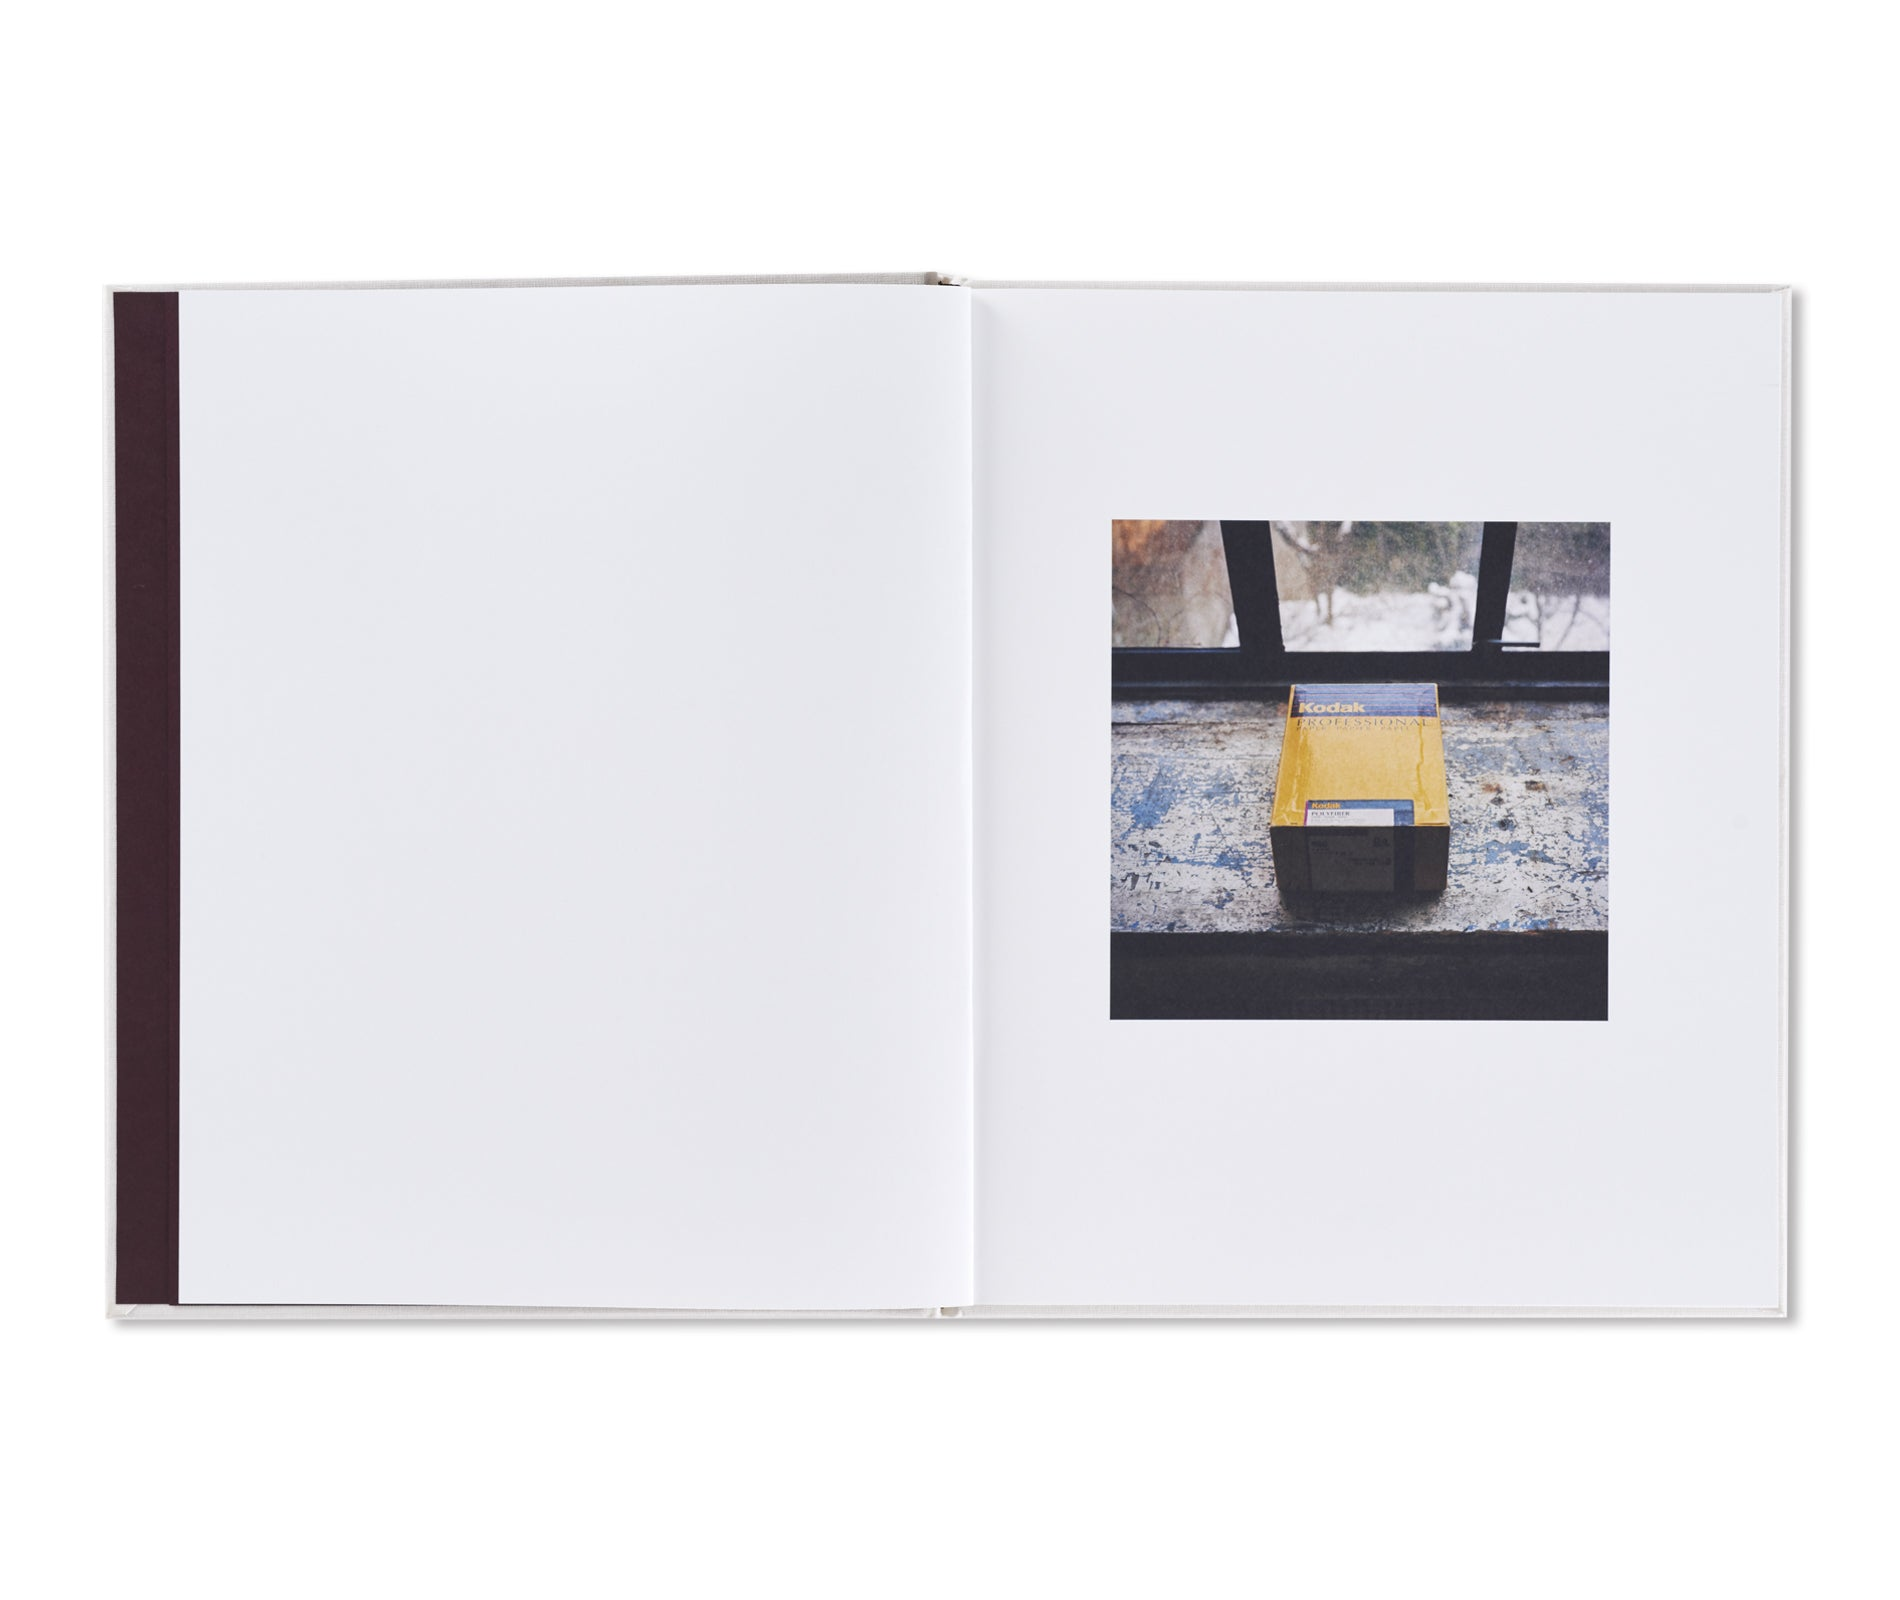 SAUL LEITER by François Halard [SECOND EDITION]